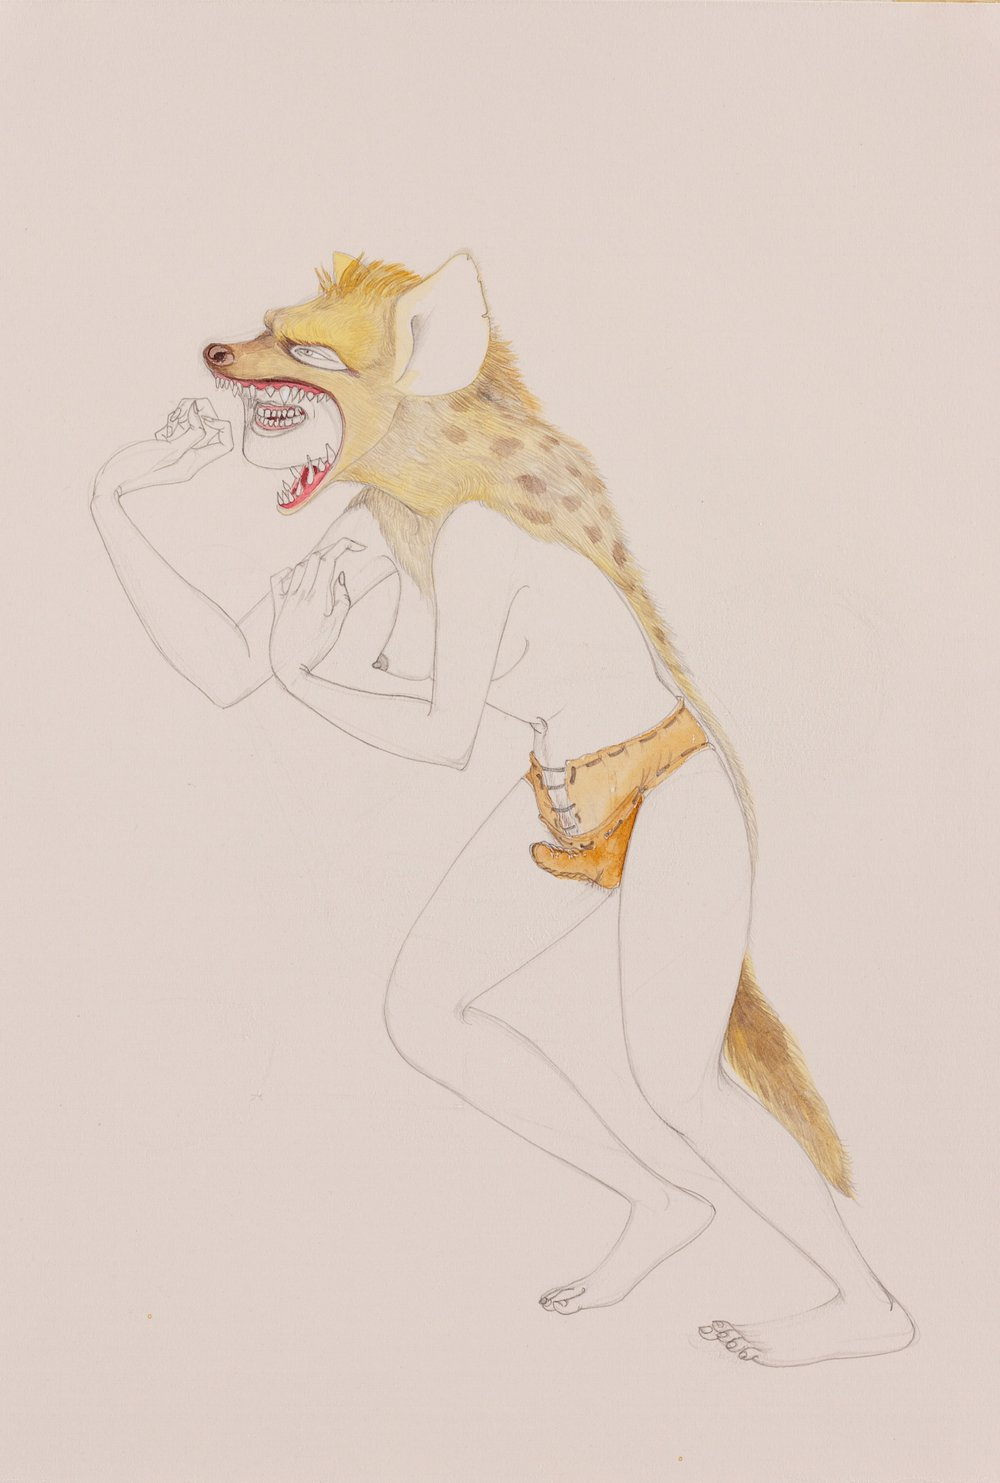 Hyena , 2010 Graphite, watercolor on ivory paper 19.5 x 13 inches Created while in residency at the Contemporary Museum, Honolulu, HI